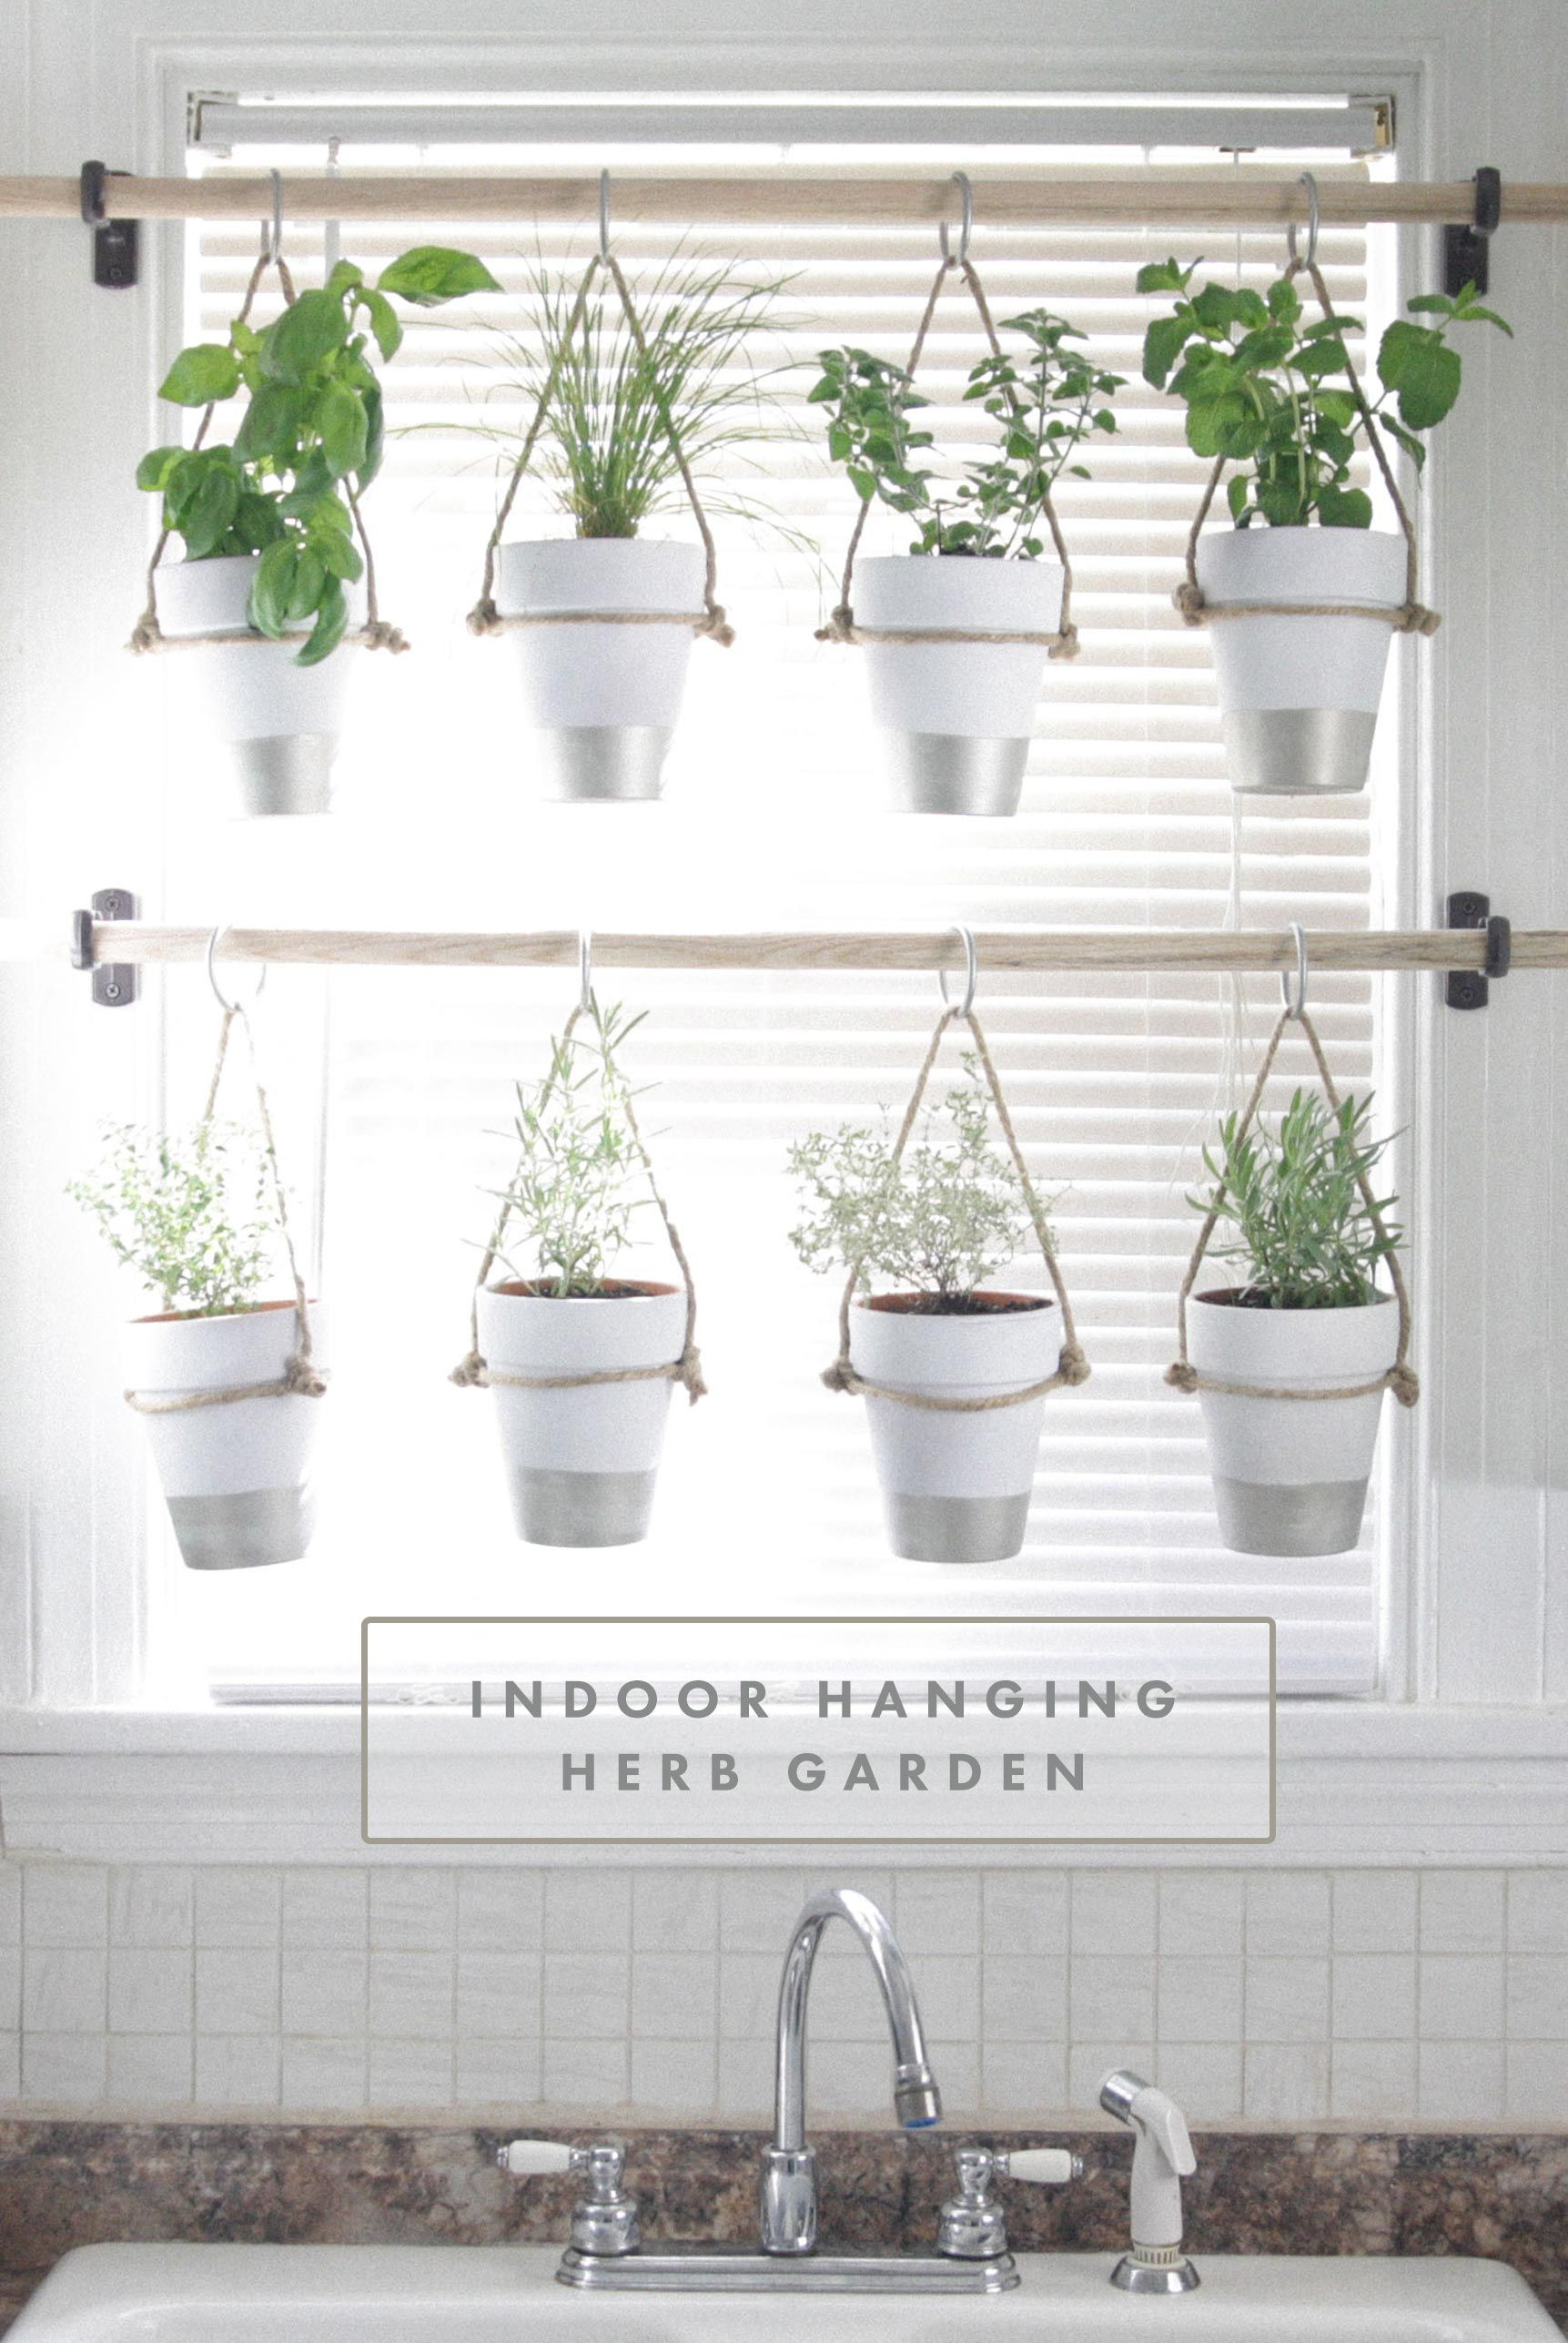 Bon DIY Indoor Hanging Herb Garden // Learn How To Make An Easy,  Budget Friendly Hanging Herb Garden For Your Window. It Will Make Your  House Prettier And Fill ...